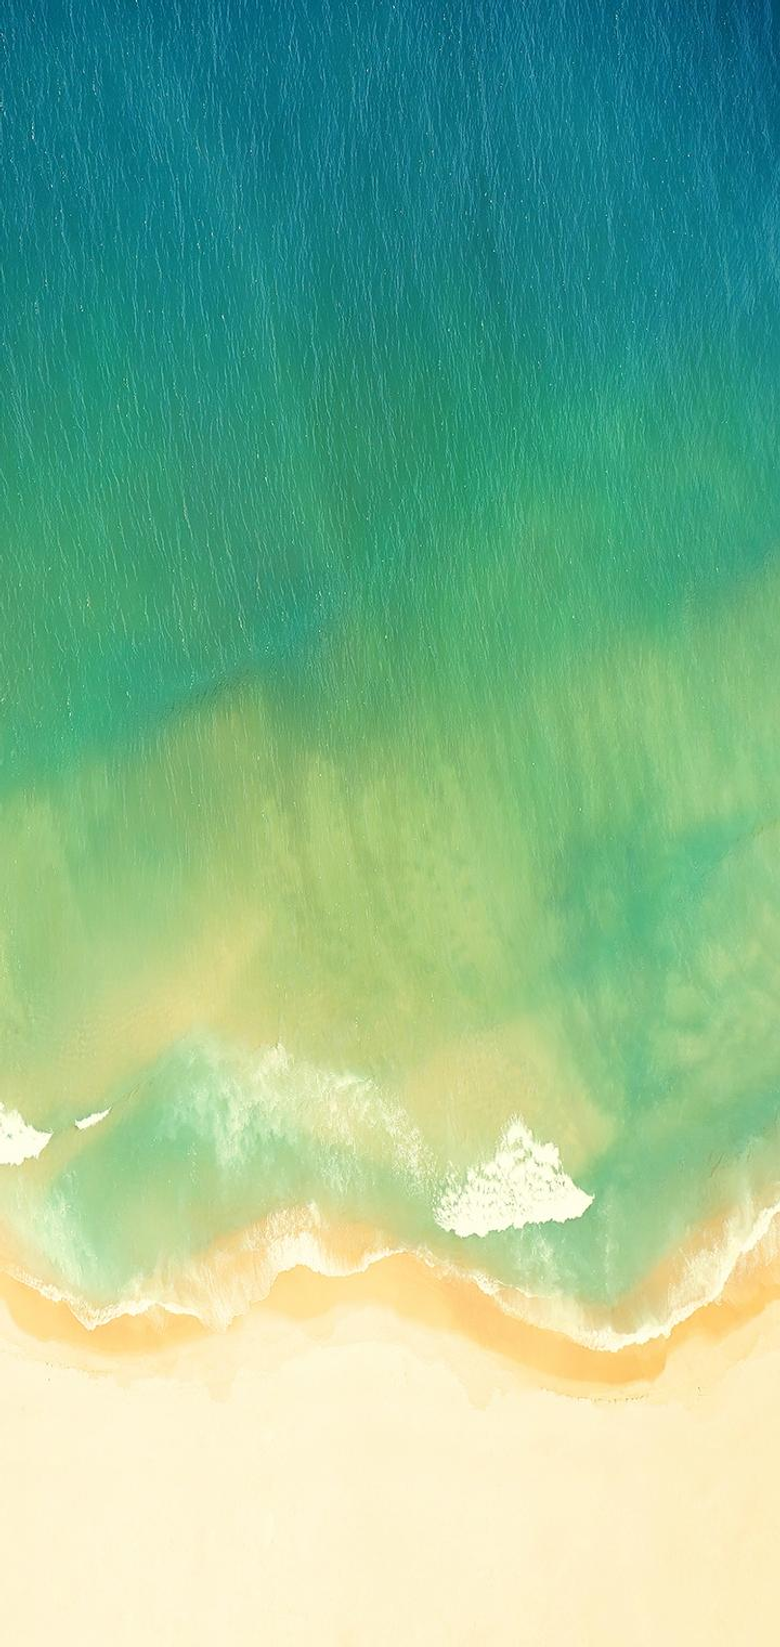 Realme 3 Stock Wallpapers 9 High Quality Walls